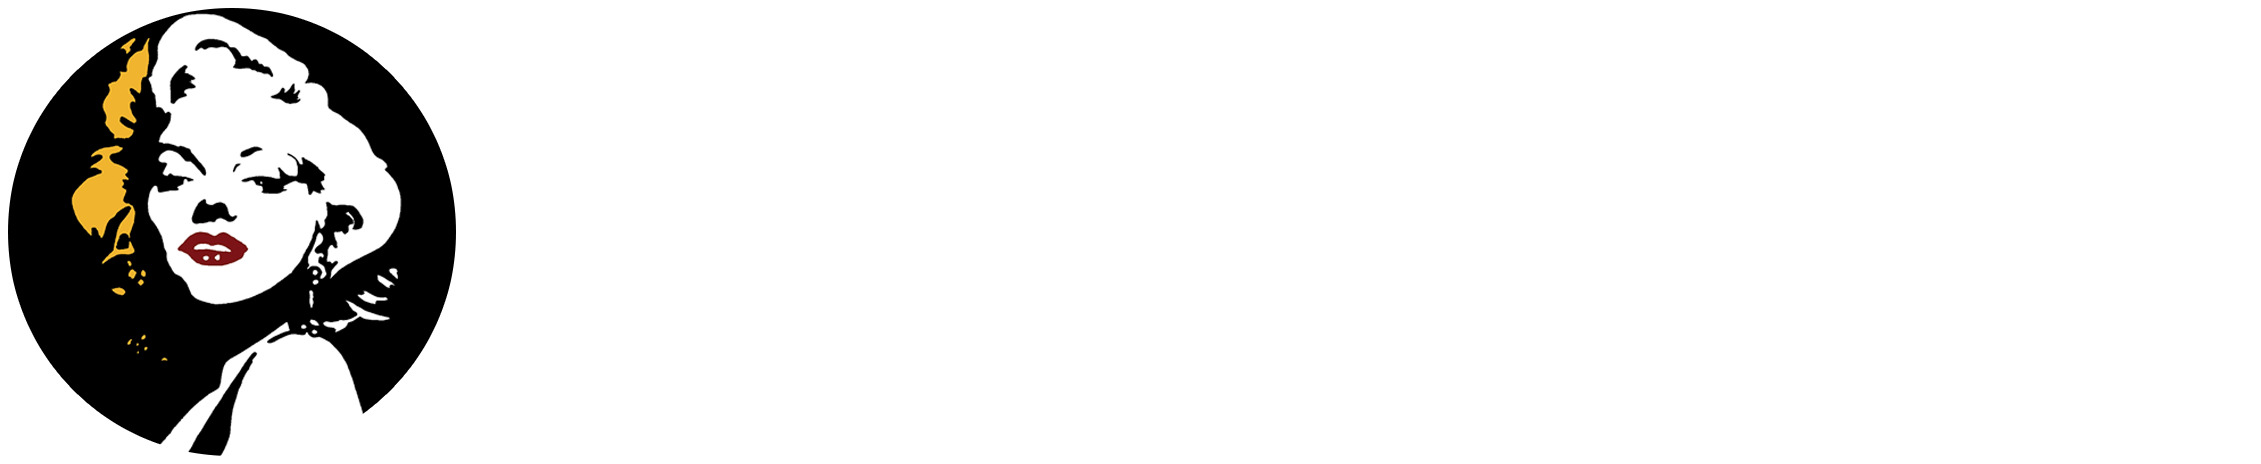 Hollywood Blonde Salon & Spa